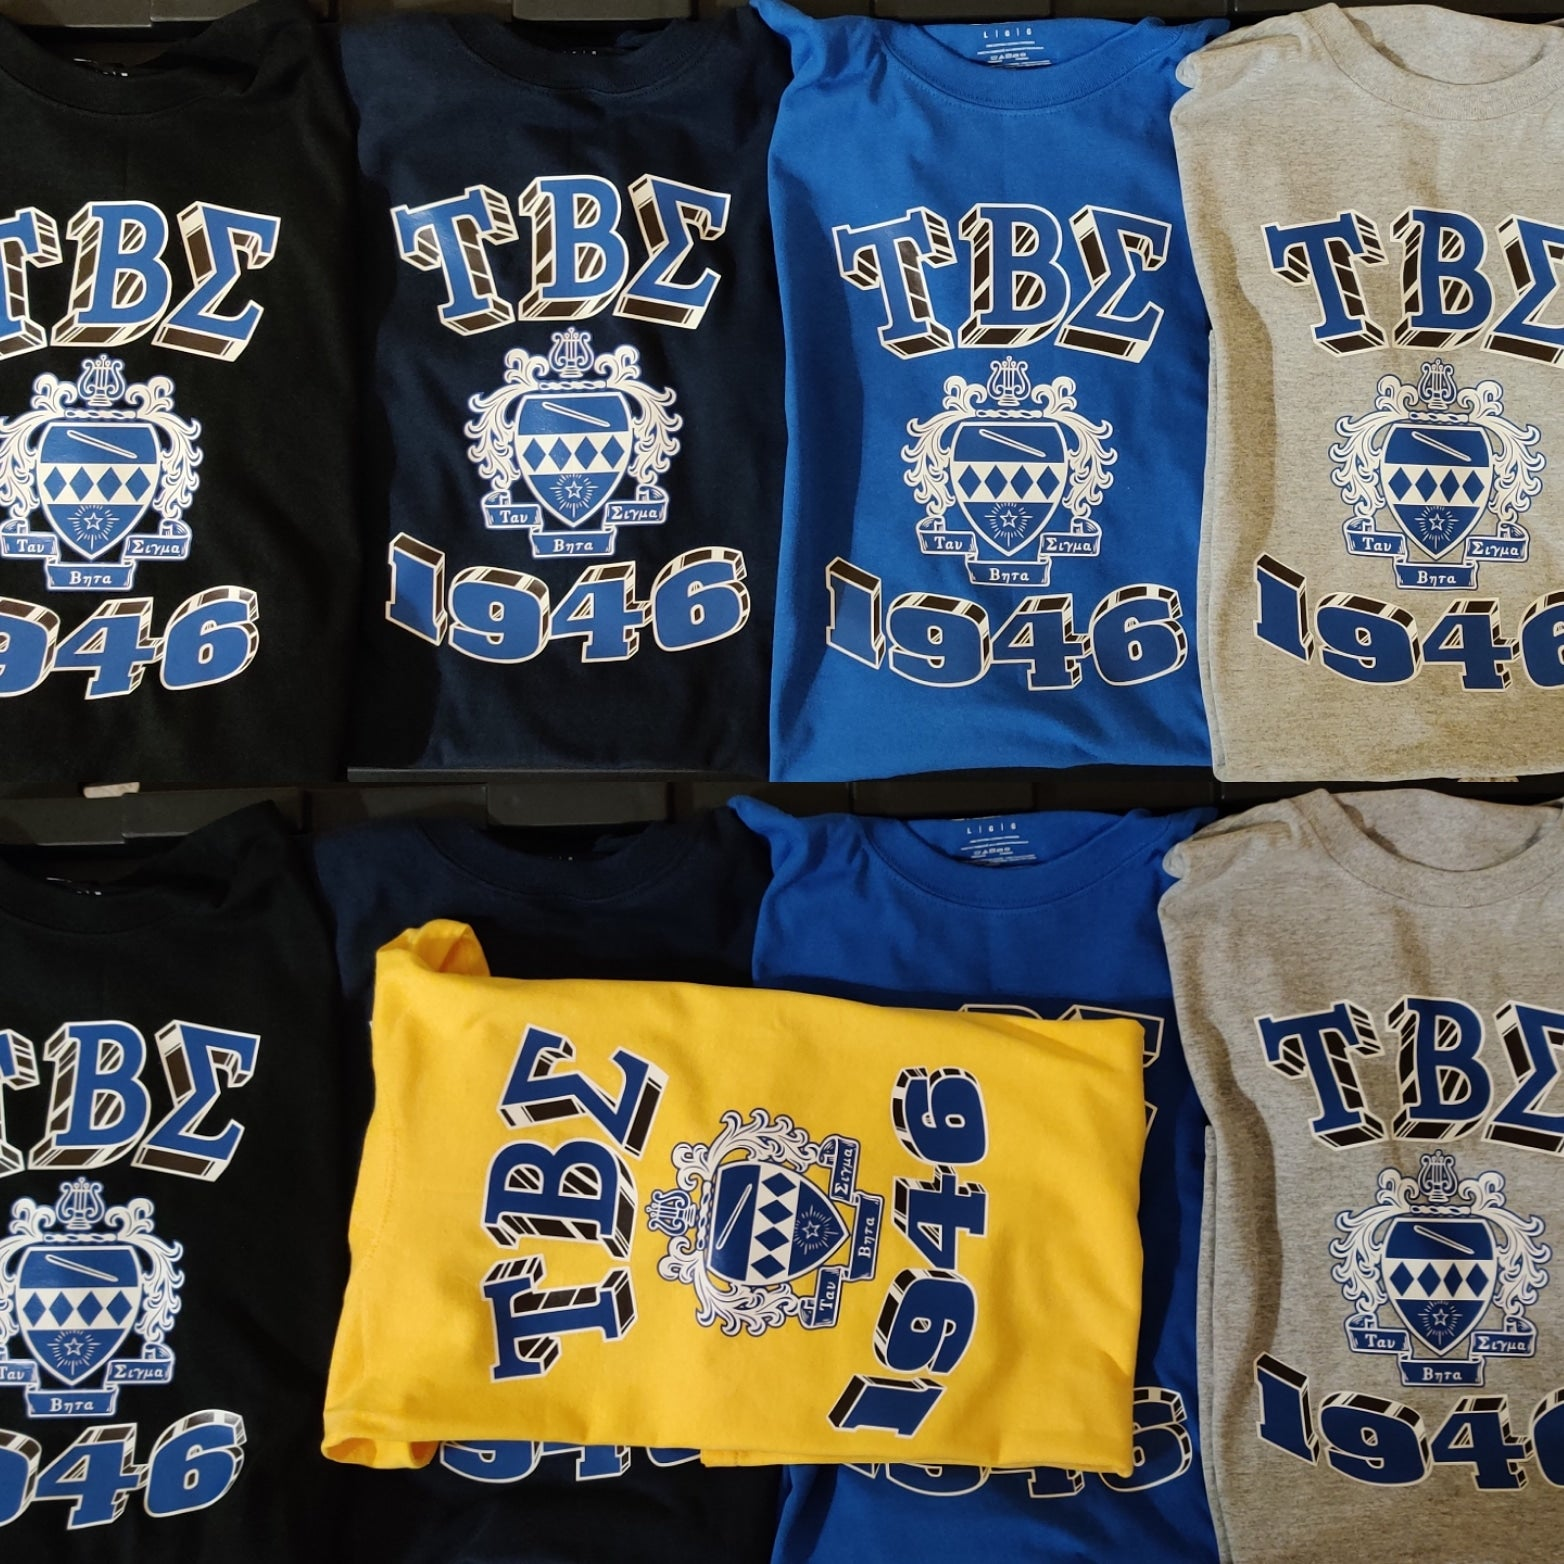 Tau Beta Sigma - 1946/Crest Block - T-Shirt